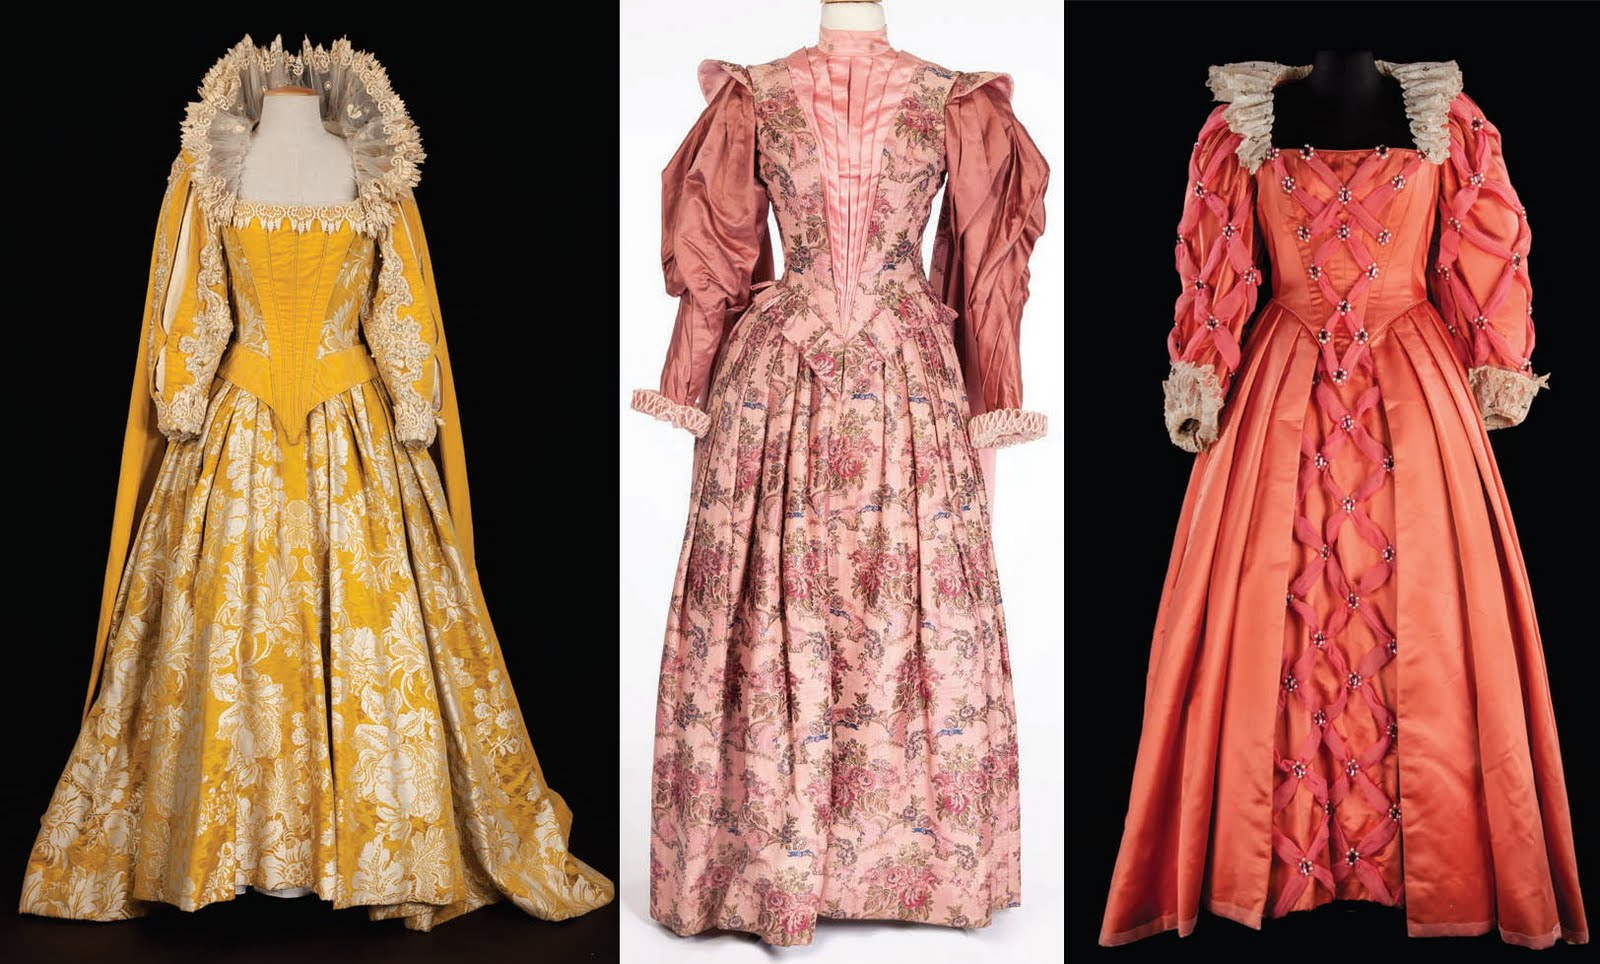 Enchanted Serenity Of Period Films Gallery Of Period Costumes To Be Sold In Largest Auction Ever